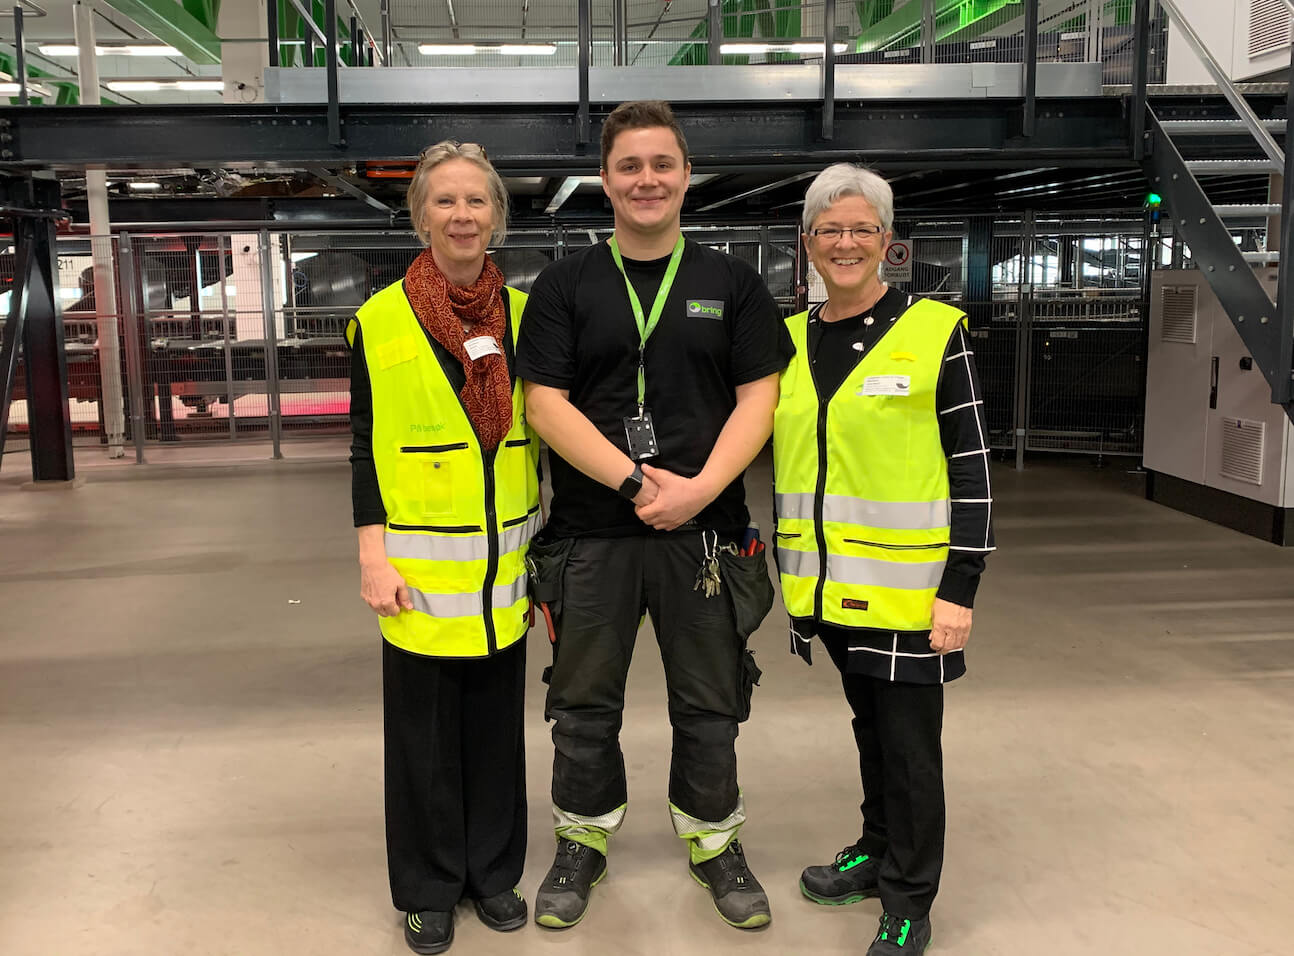 Shellie Bird and Jane Beach with Petter, a postal worker in the parcel sorting terminal in Oslo.